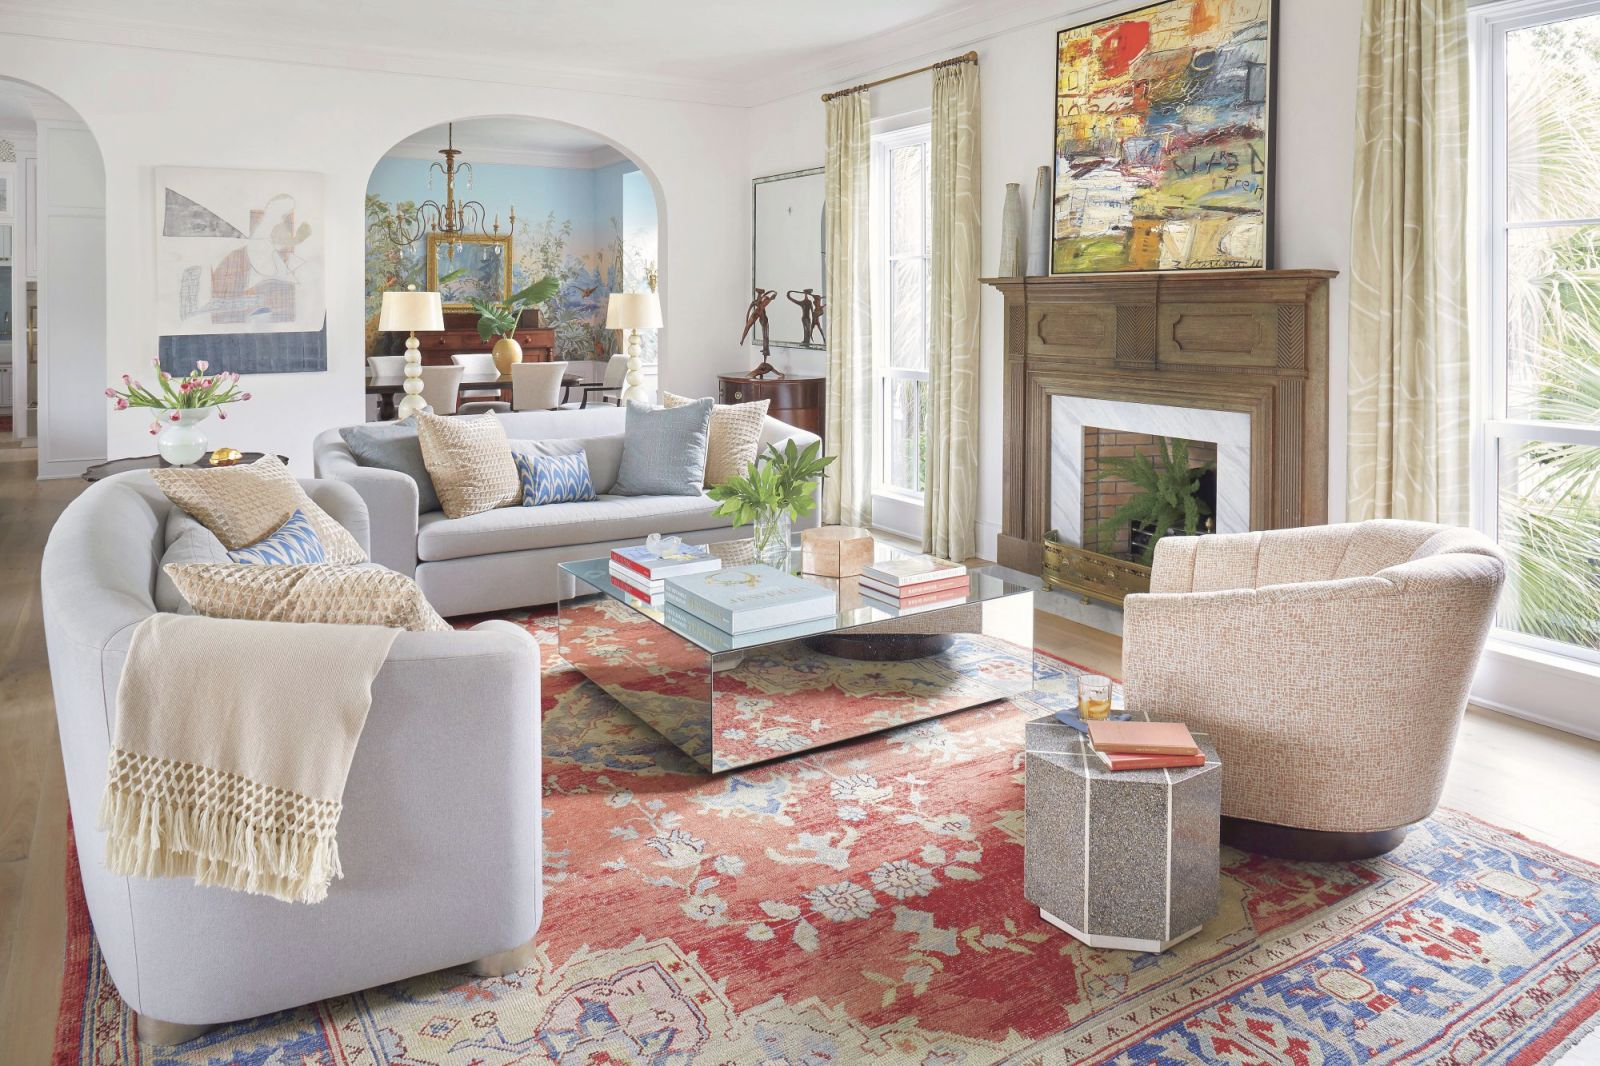 Get Inspired With Our Favorite Neutrals inside Best Neutral Paint Colors For Living Room